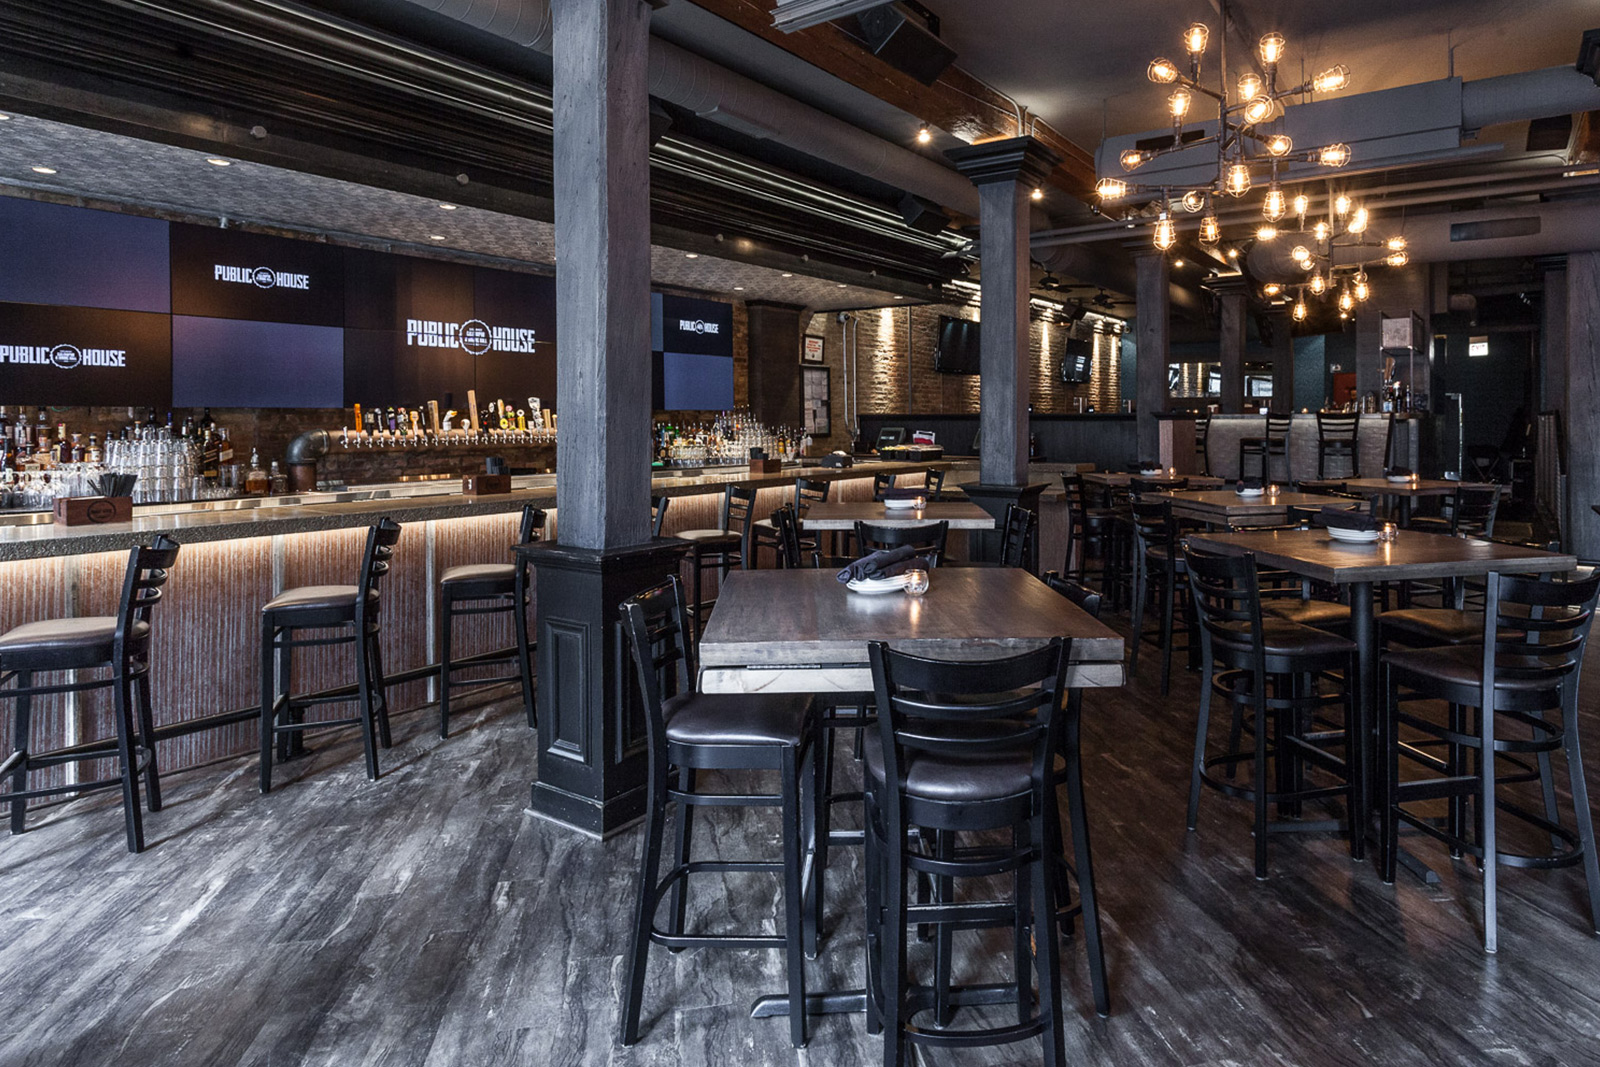 The West Bar event space at Public House in Chicago, Chicagoland Area